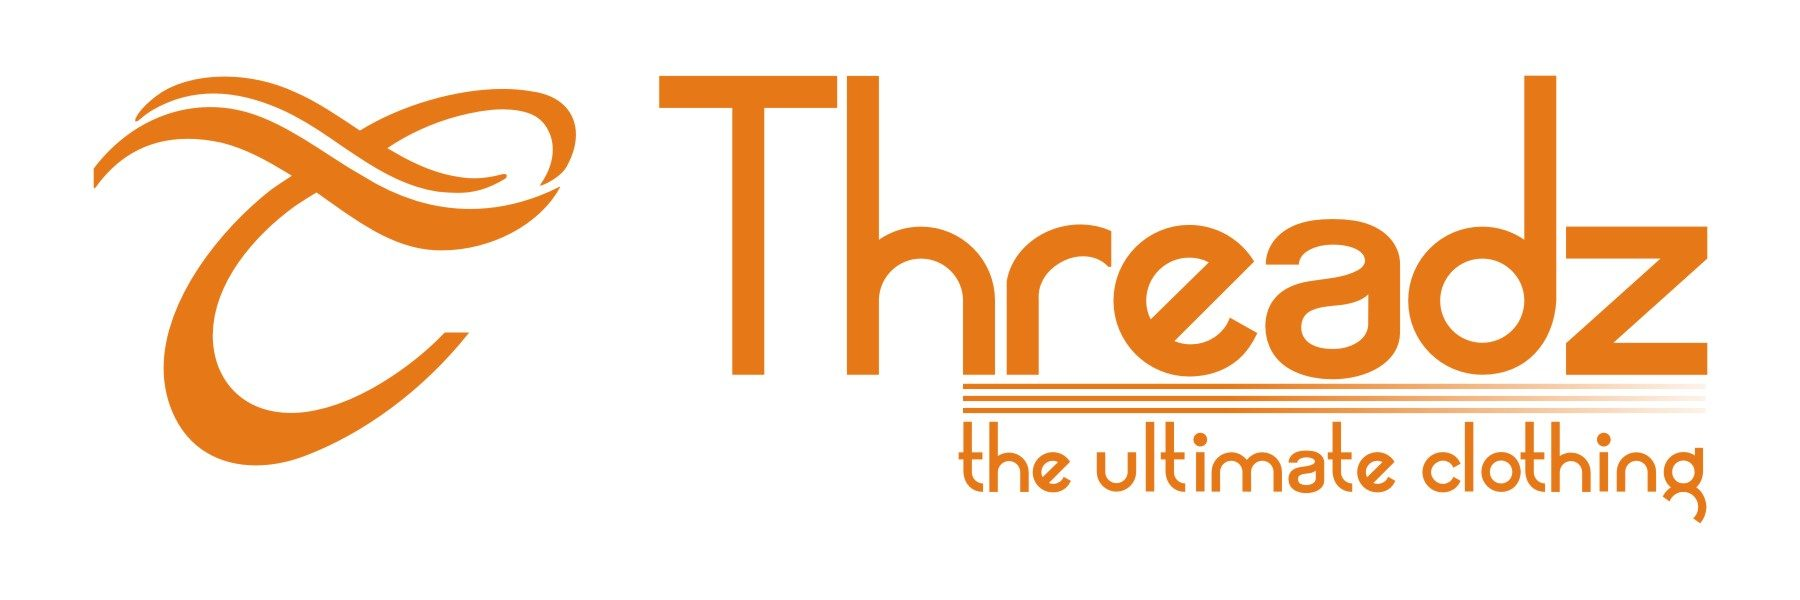 Threadz India: The Ultimate Clothing Since 2002